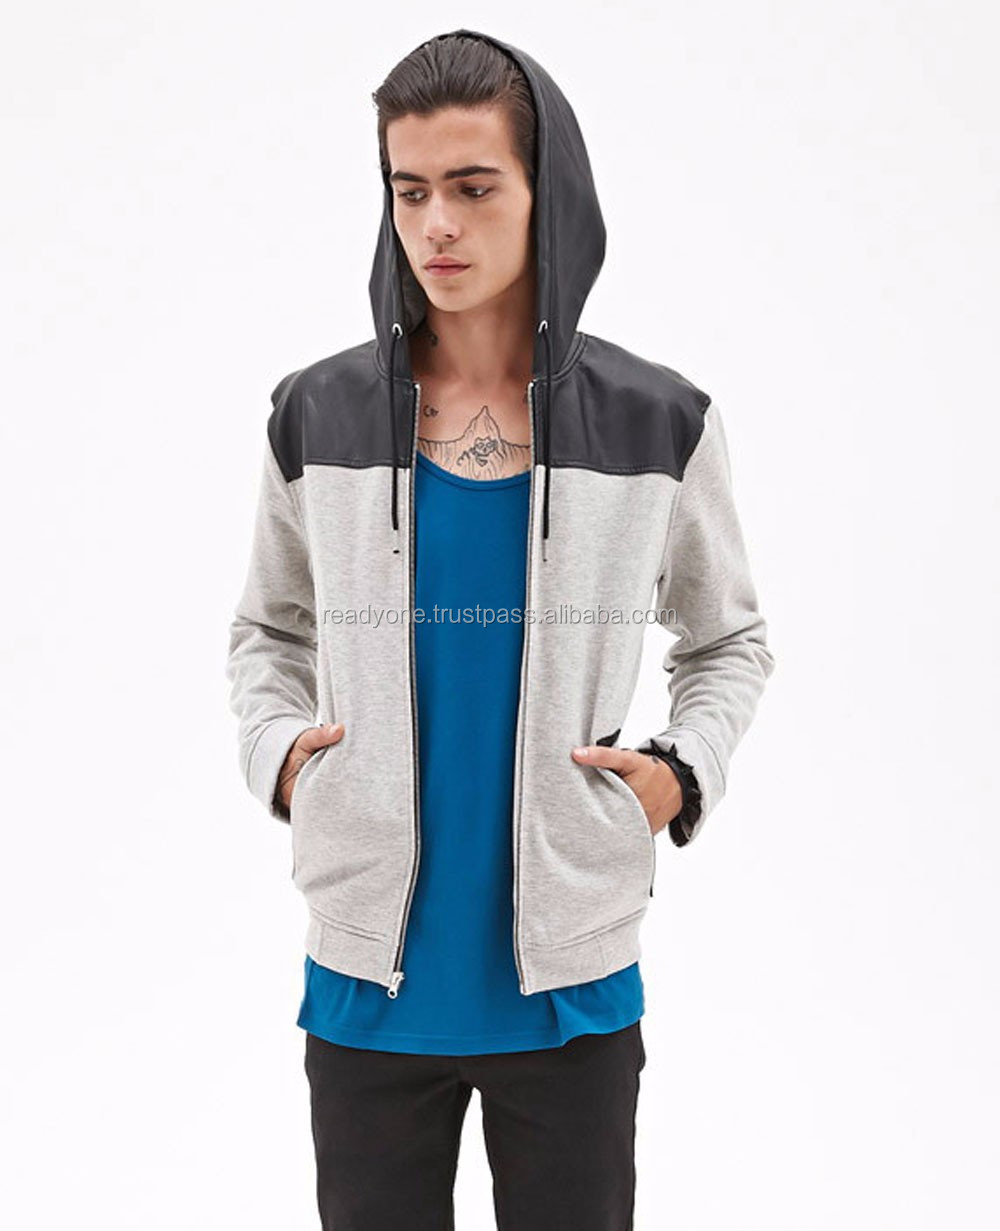 Zipper up Hoodies,Custom Blank Hoodies,Wholesale Hoodies Men, mobile pocket & thumb hole hoodie